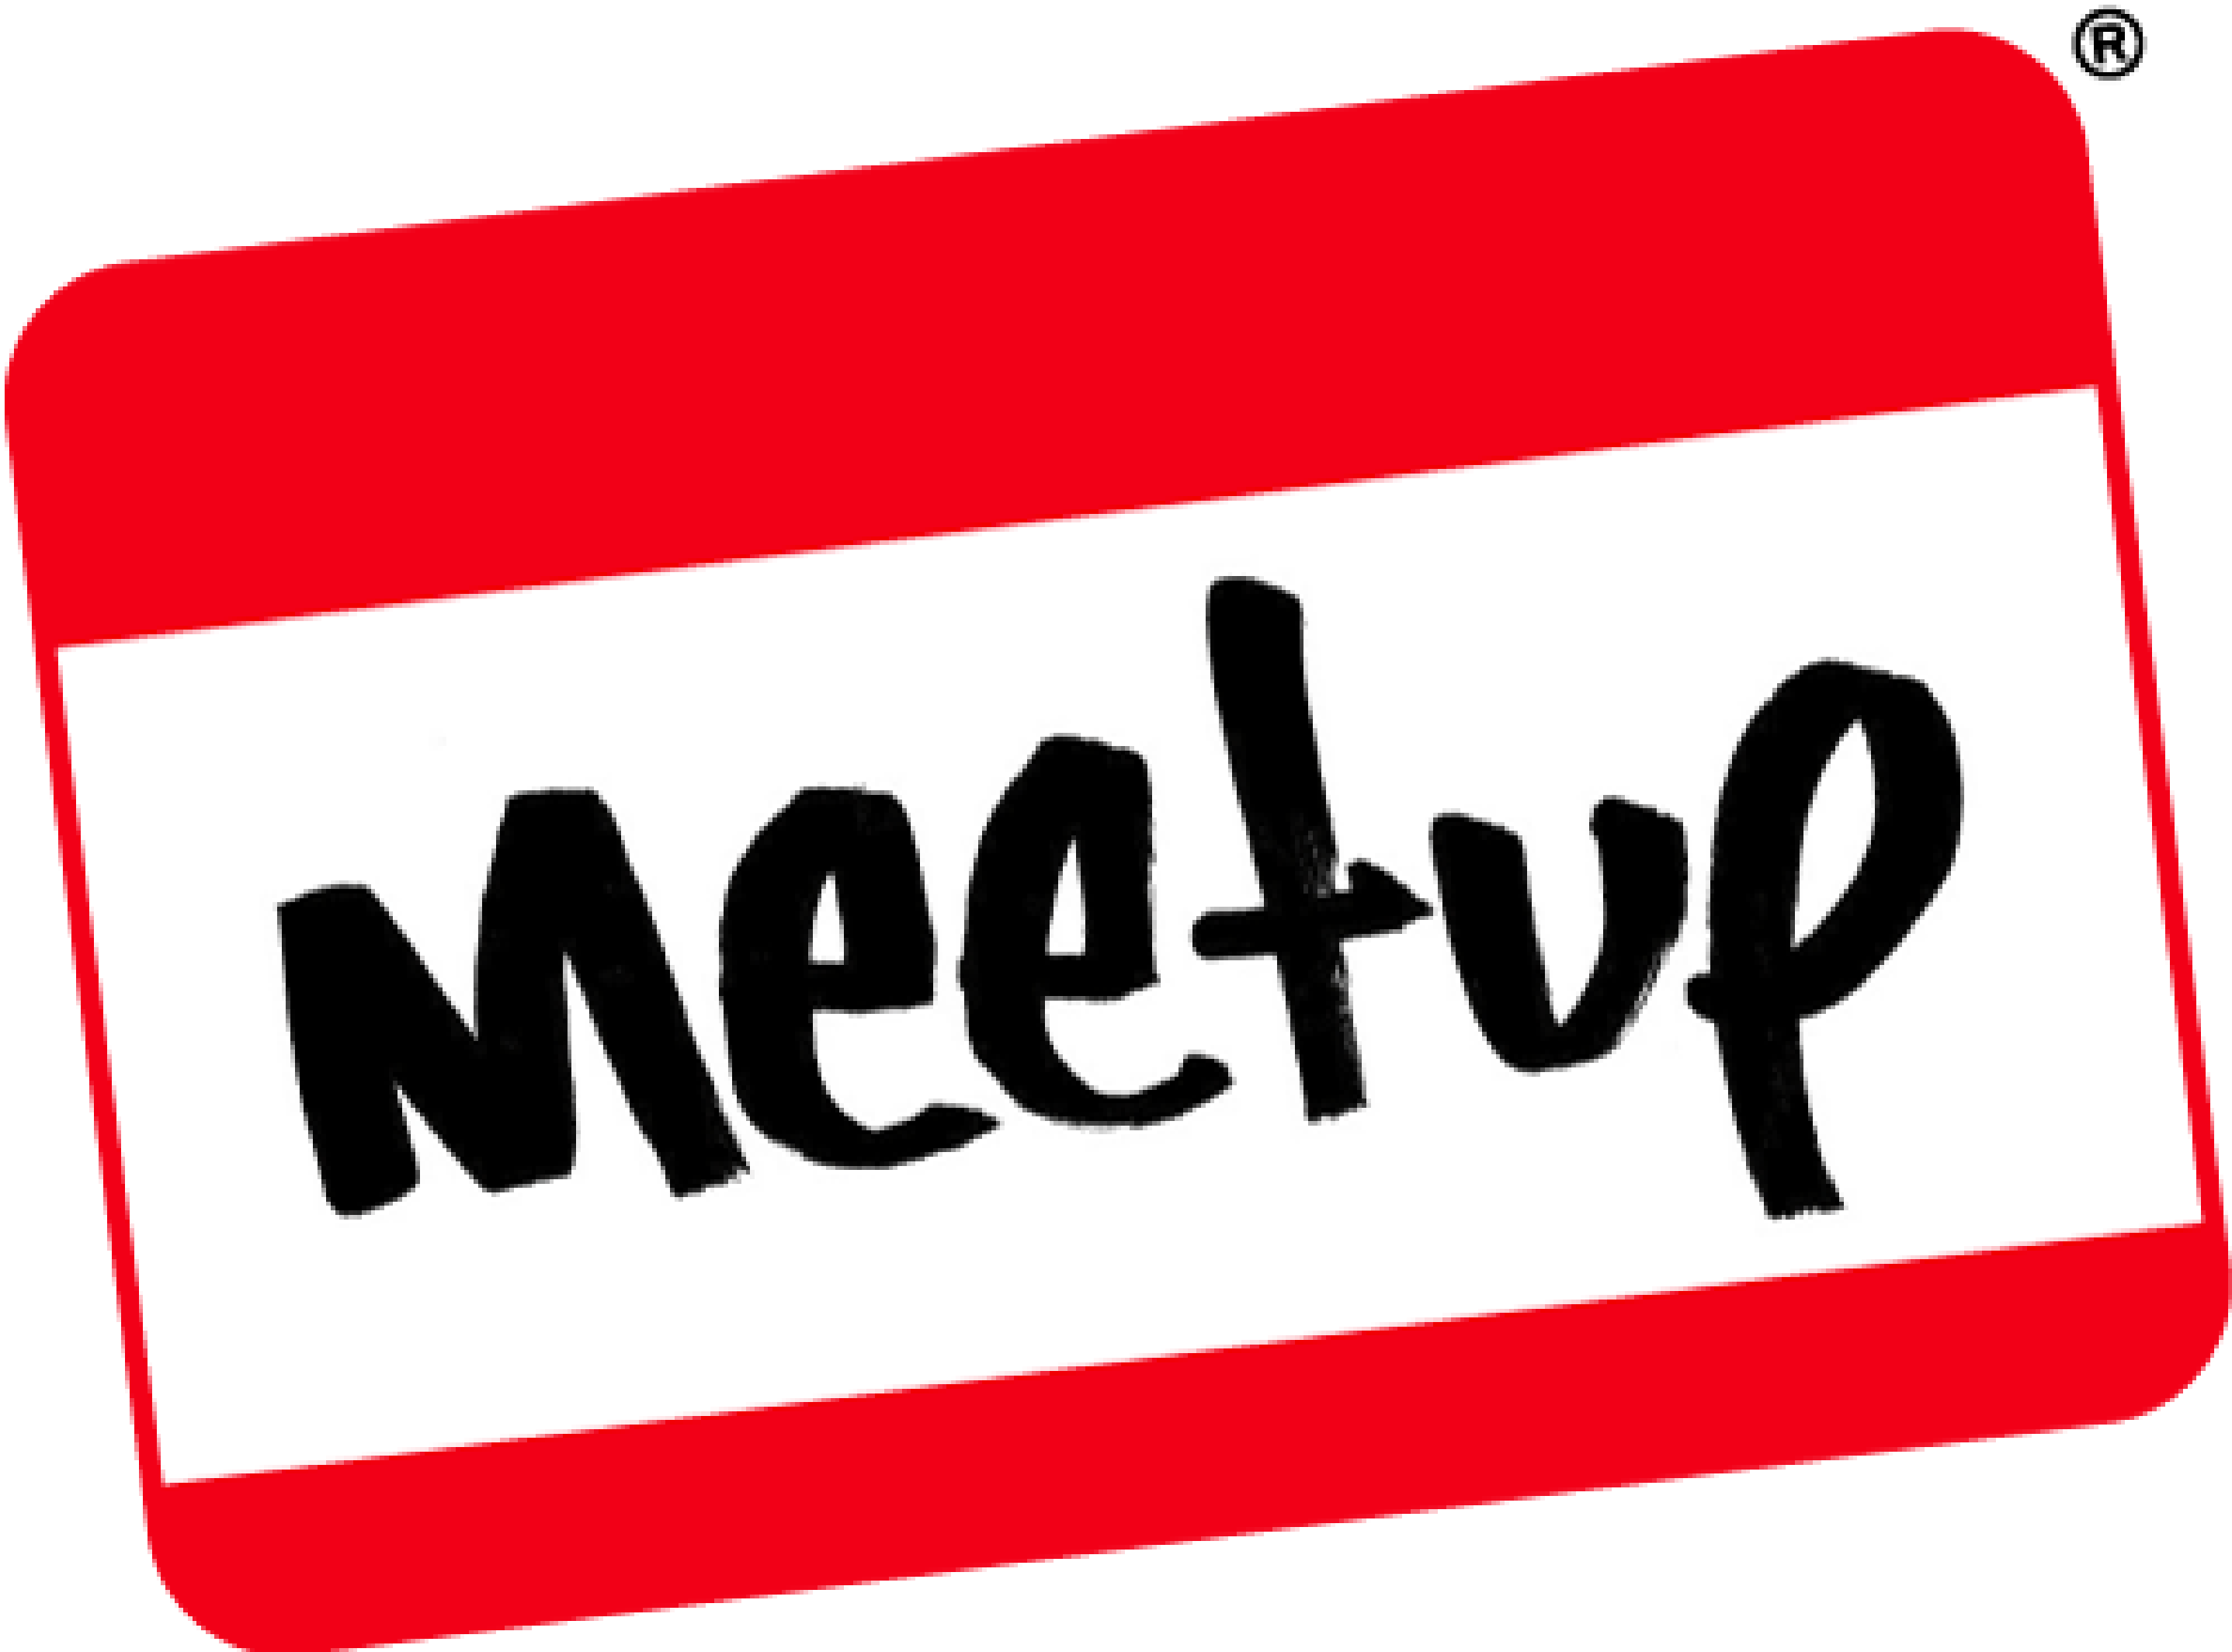 Meetup Logo Png, png collections at sccpre.cat.